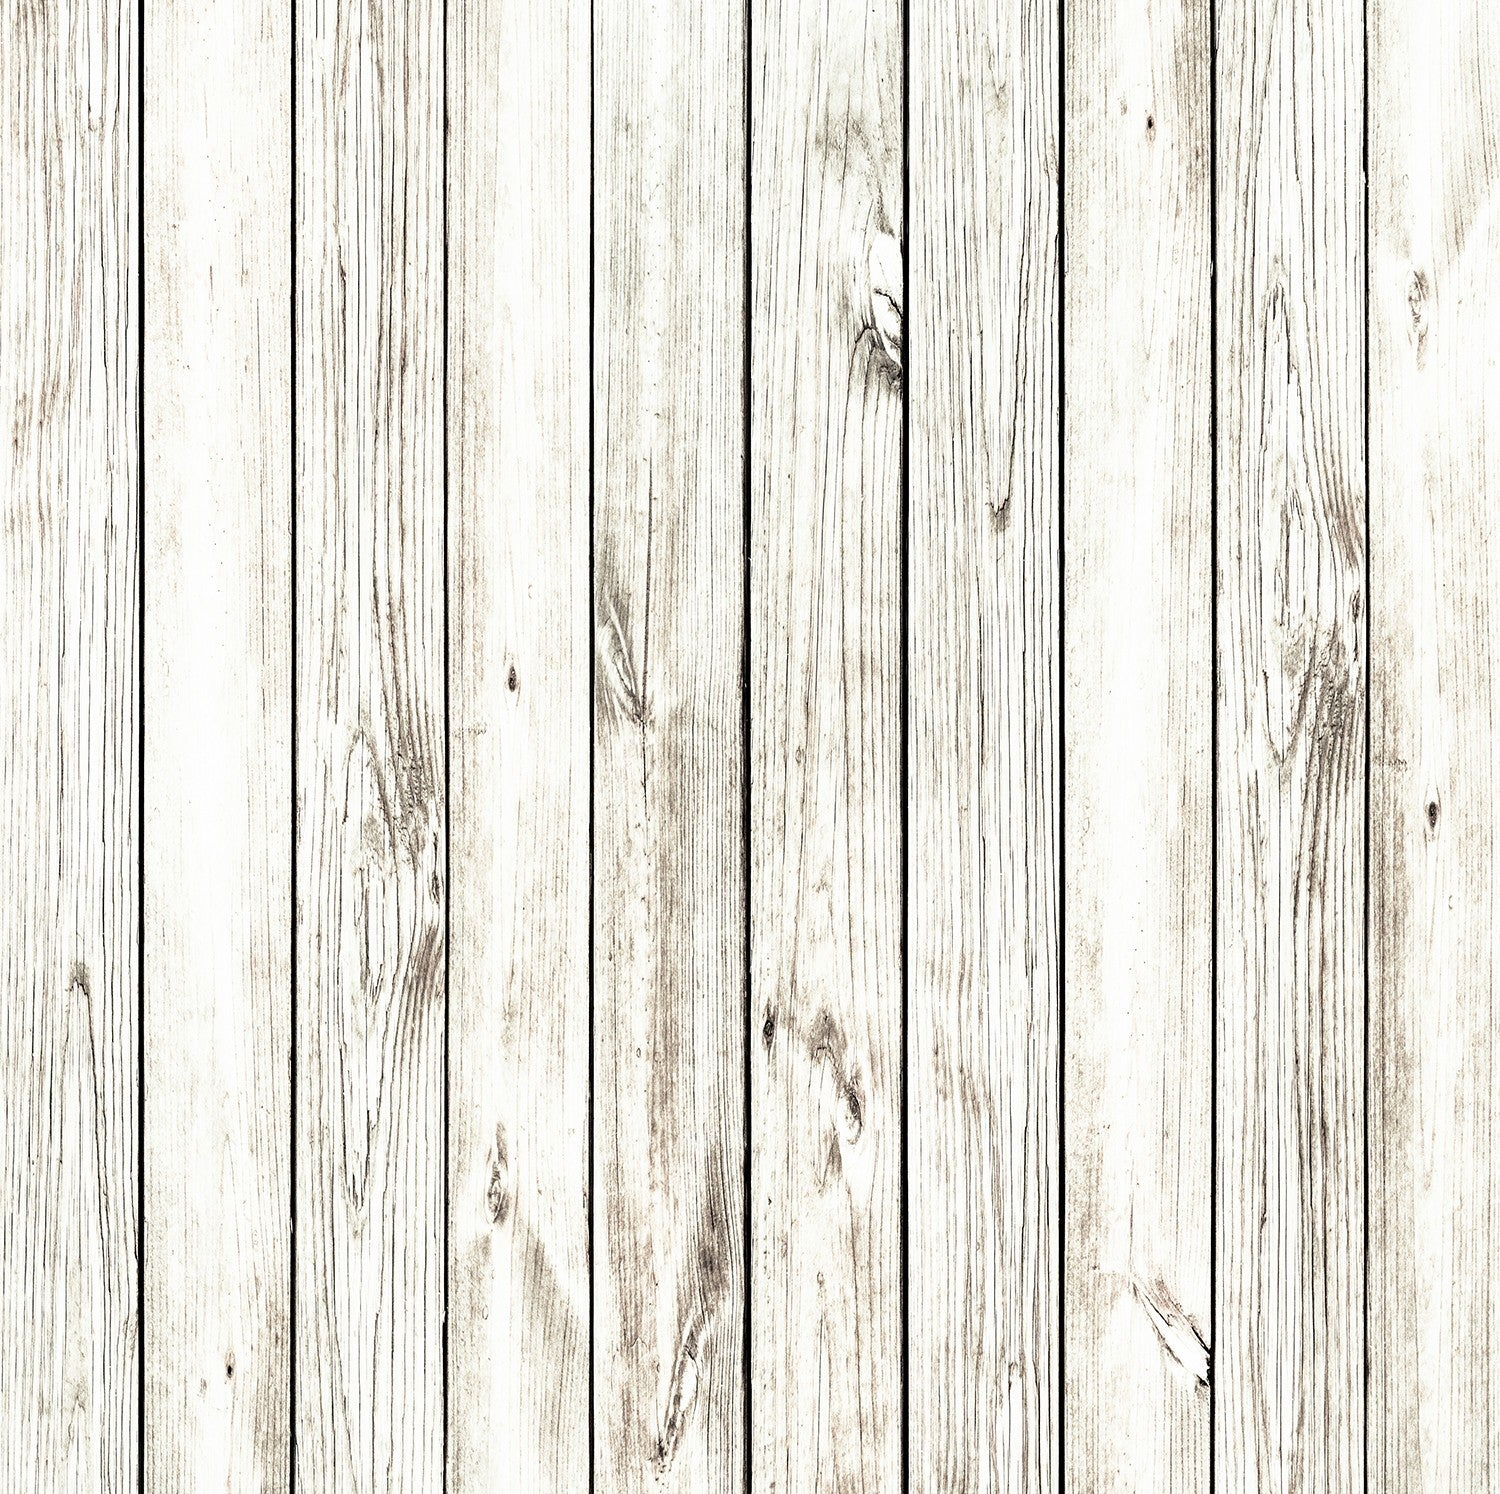 Incroyable StudioPRO Vinyl Picturesque White Wood Floor Backdrop   (Choose Size)